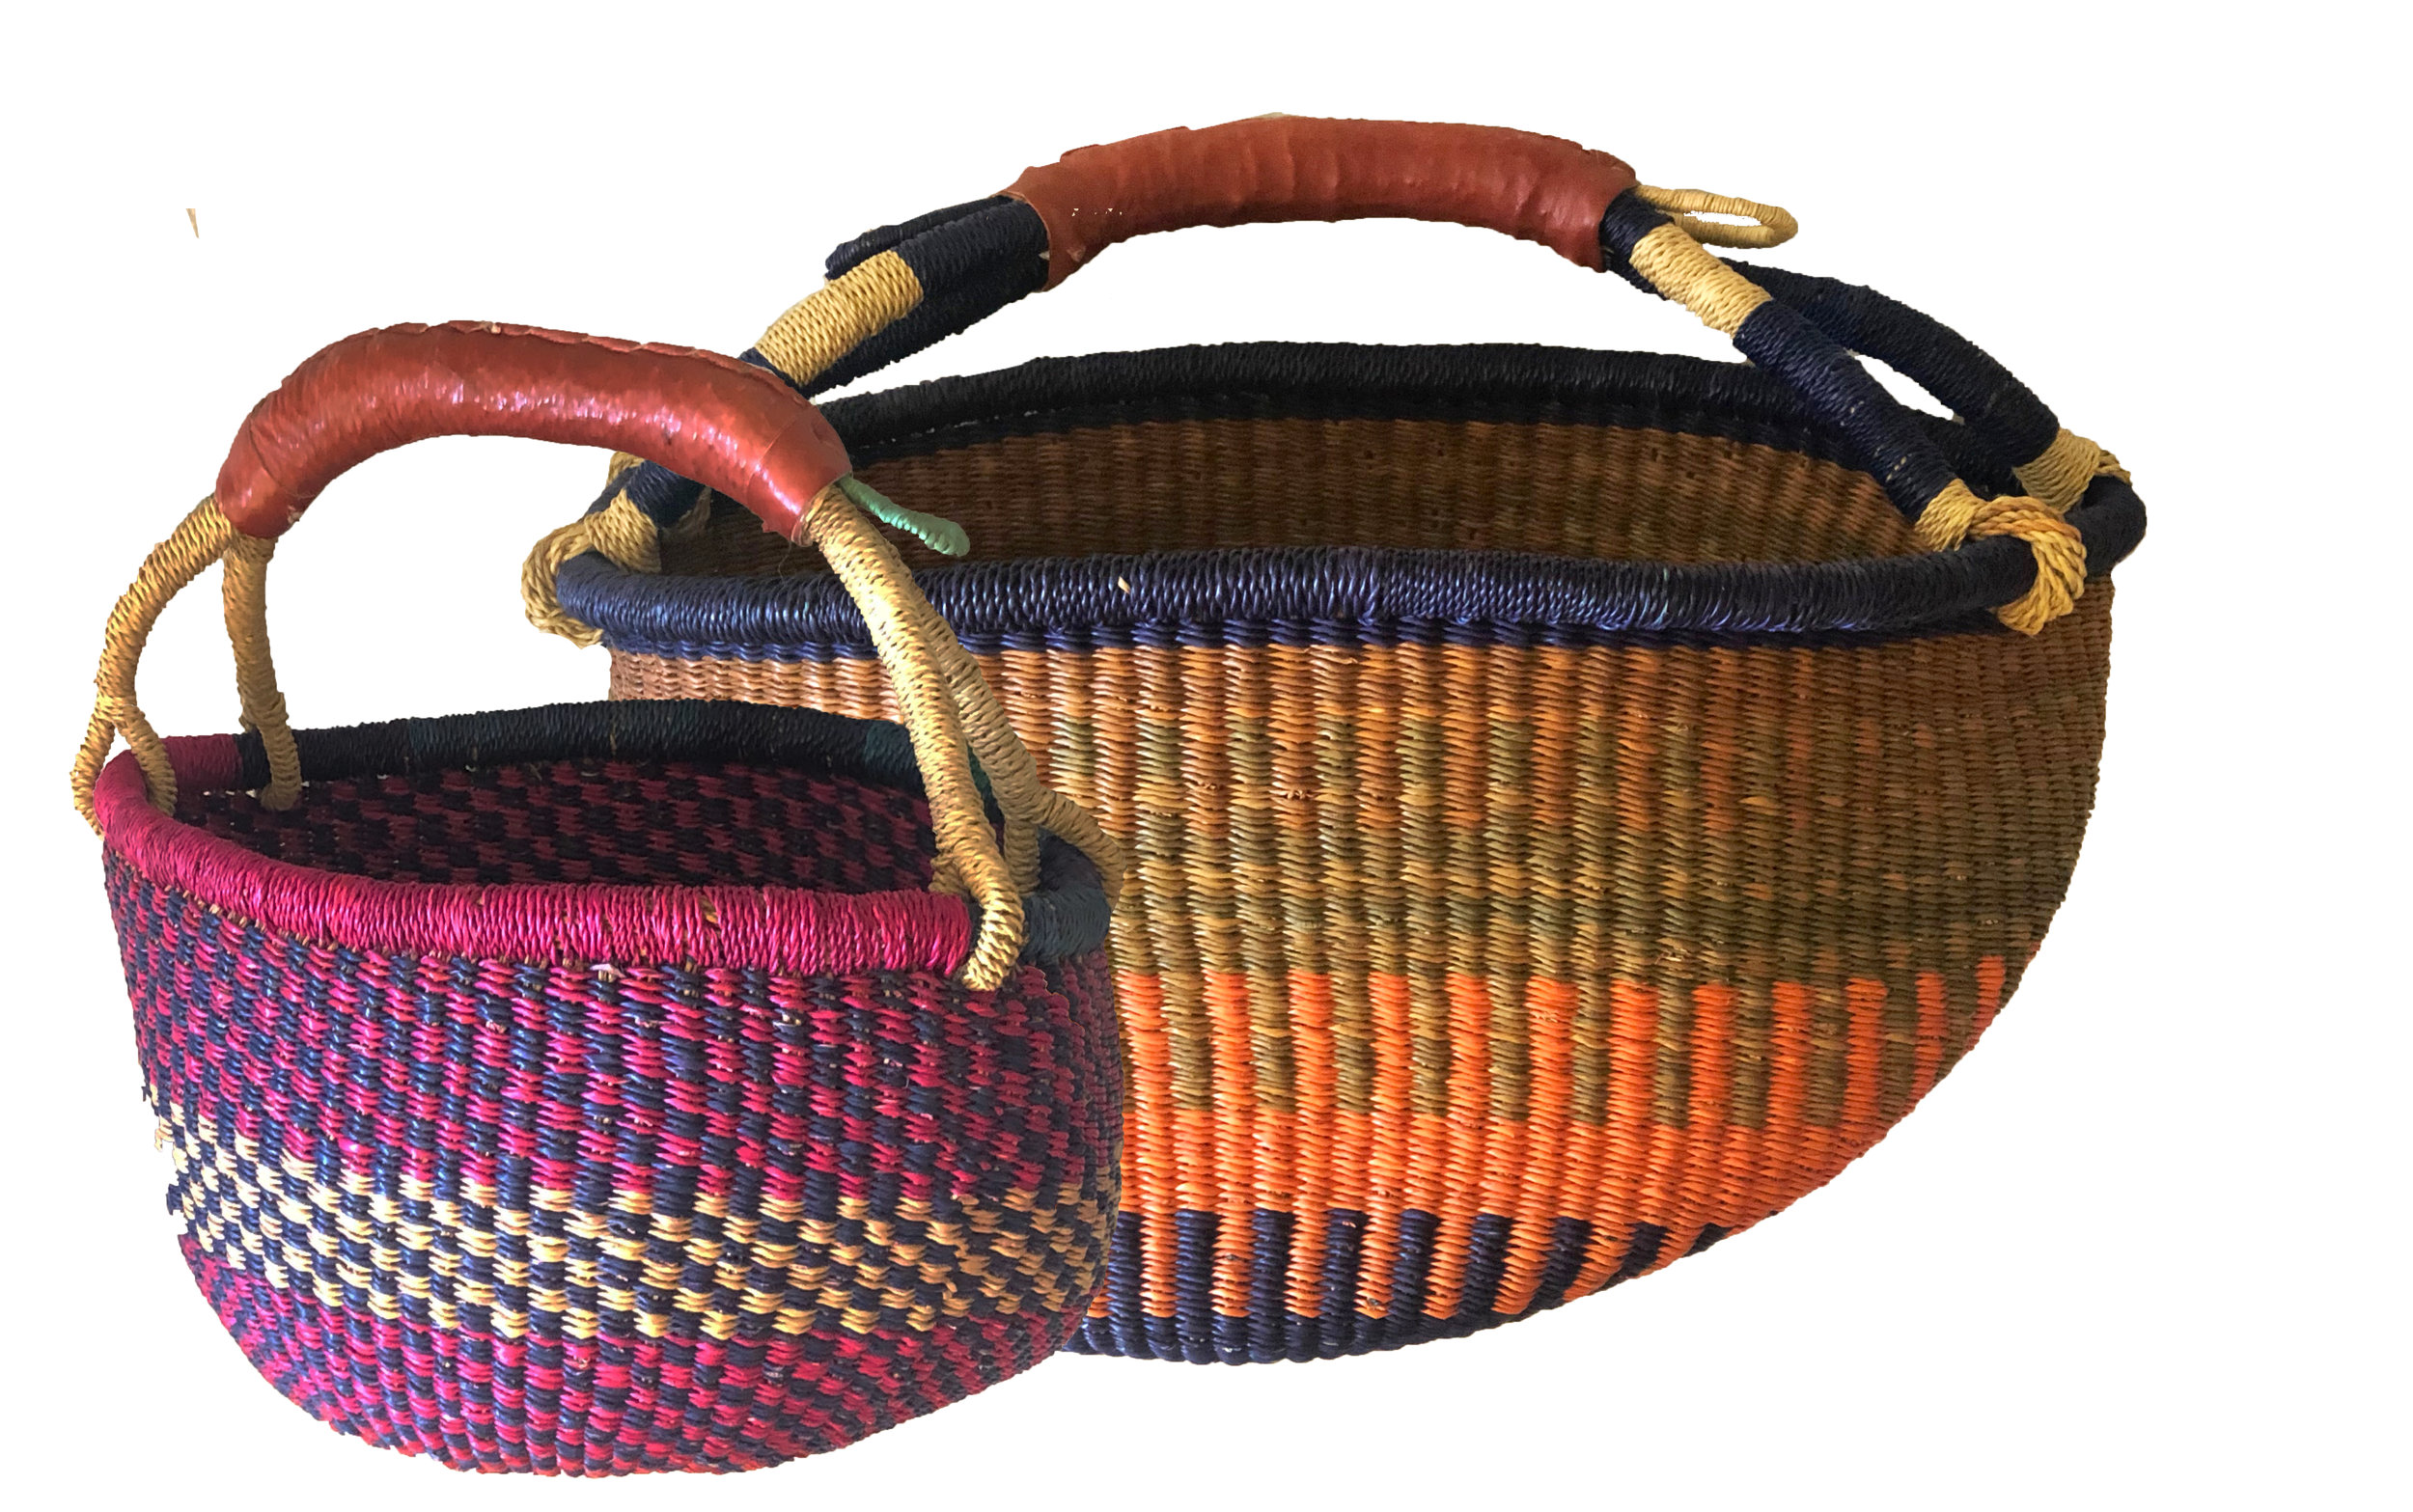 We even found these baskets from #GoFinding that are the perfect orange and navy.